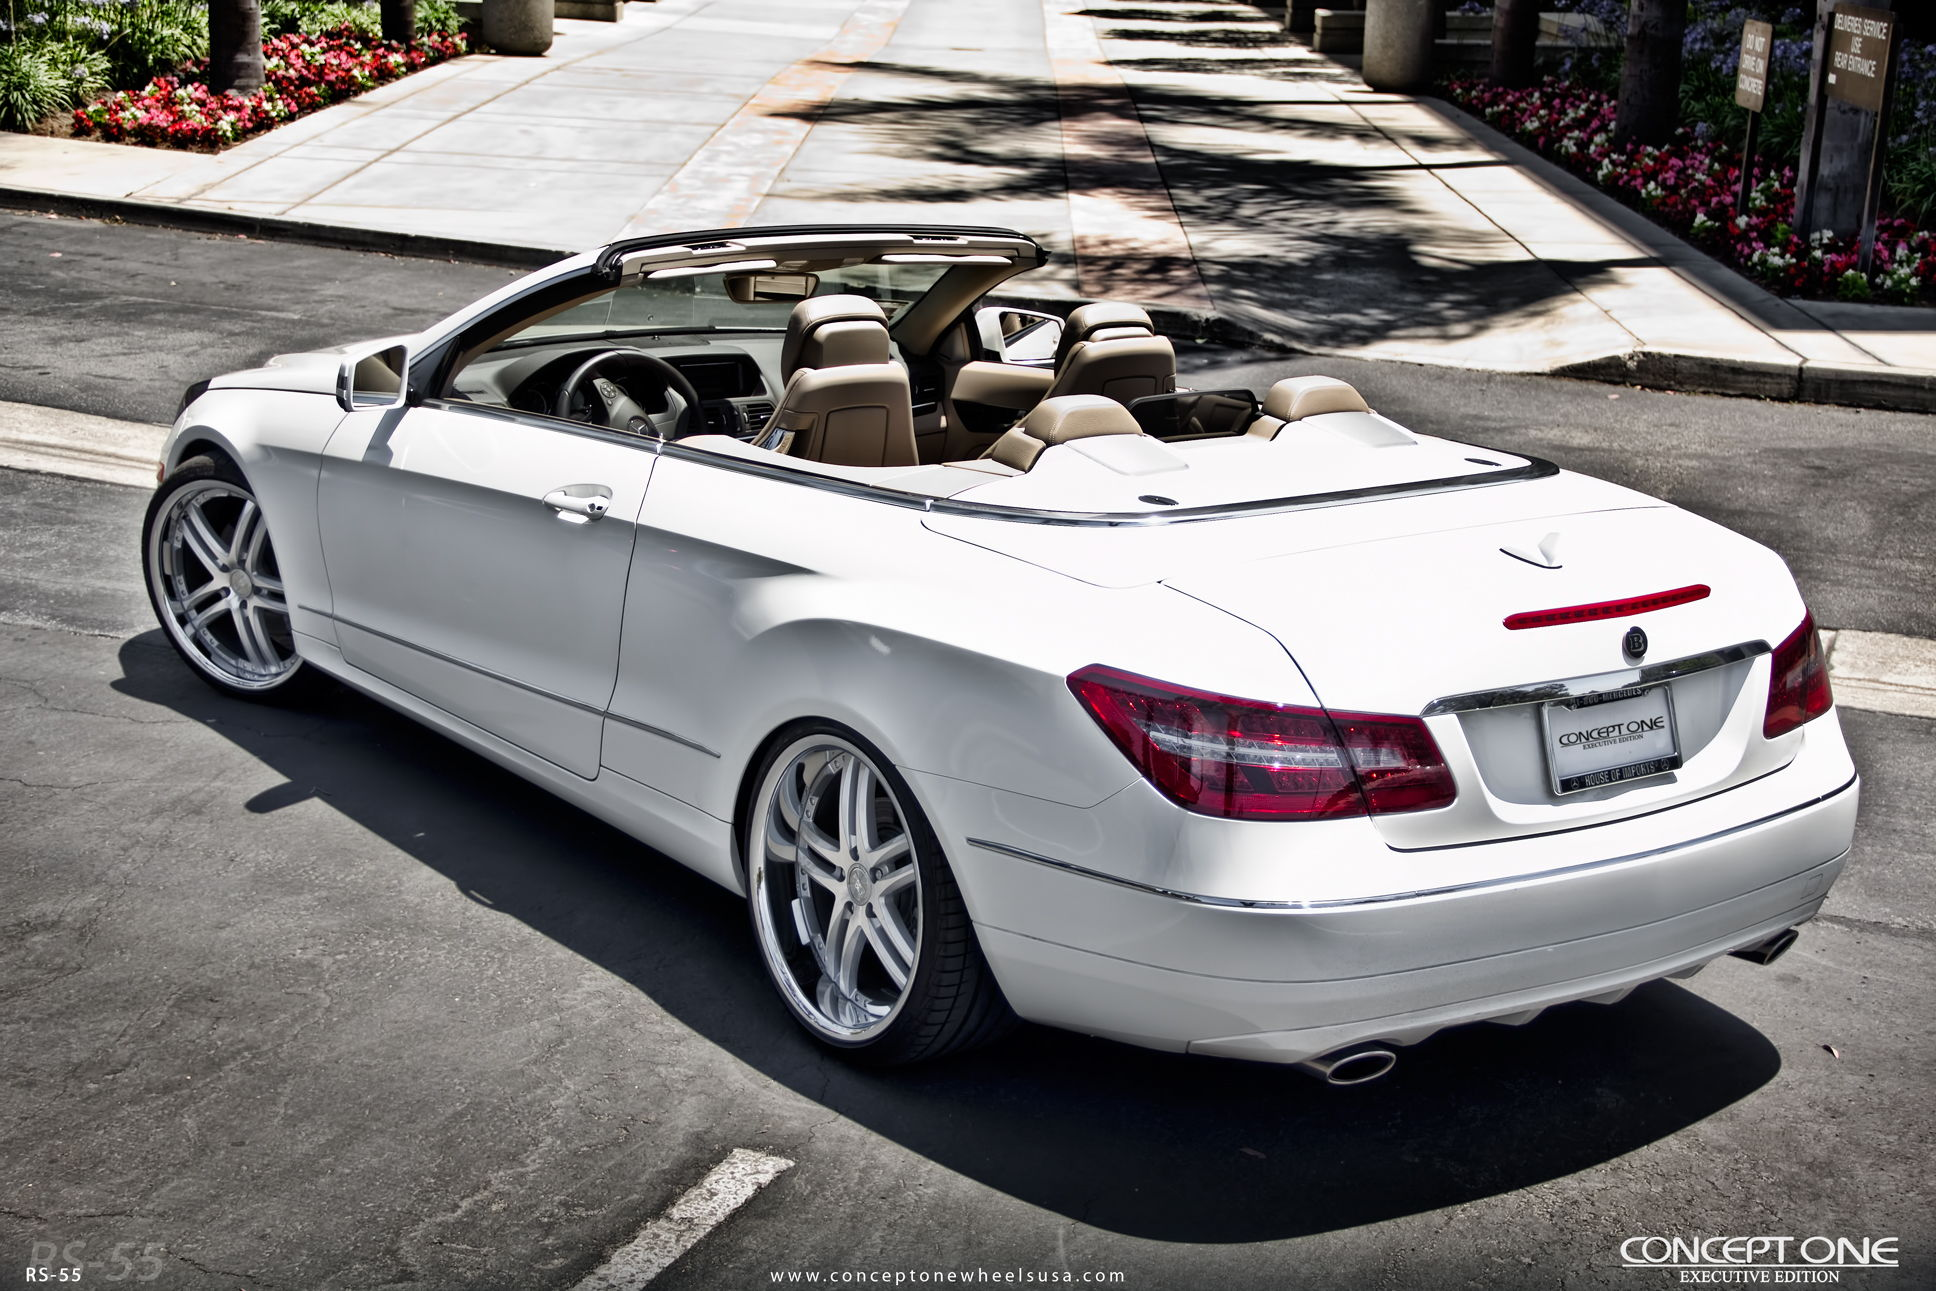 Mercedes E550 For Sale >> Concept One Wheels RS-55 | C207 Convertible - MBWorld.org Forums